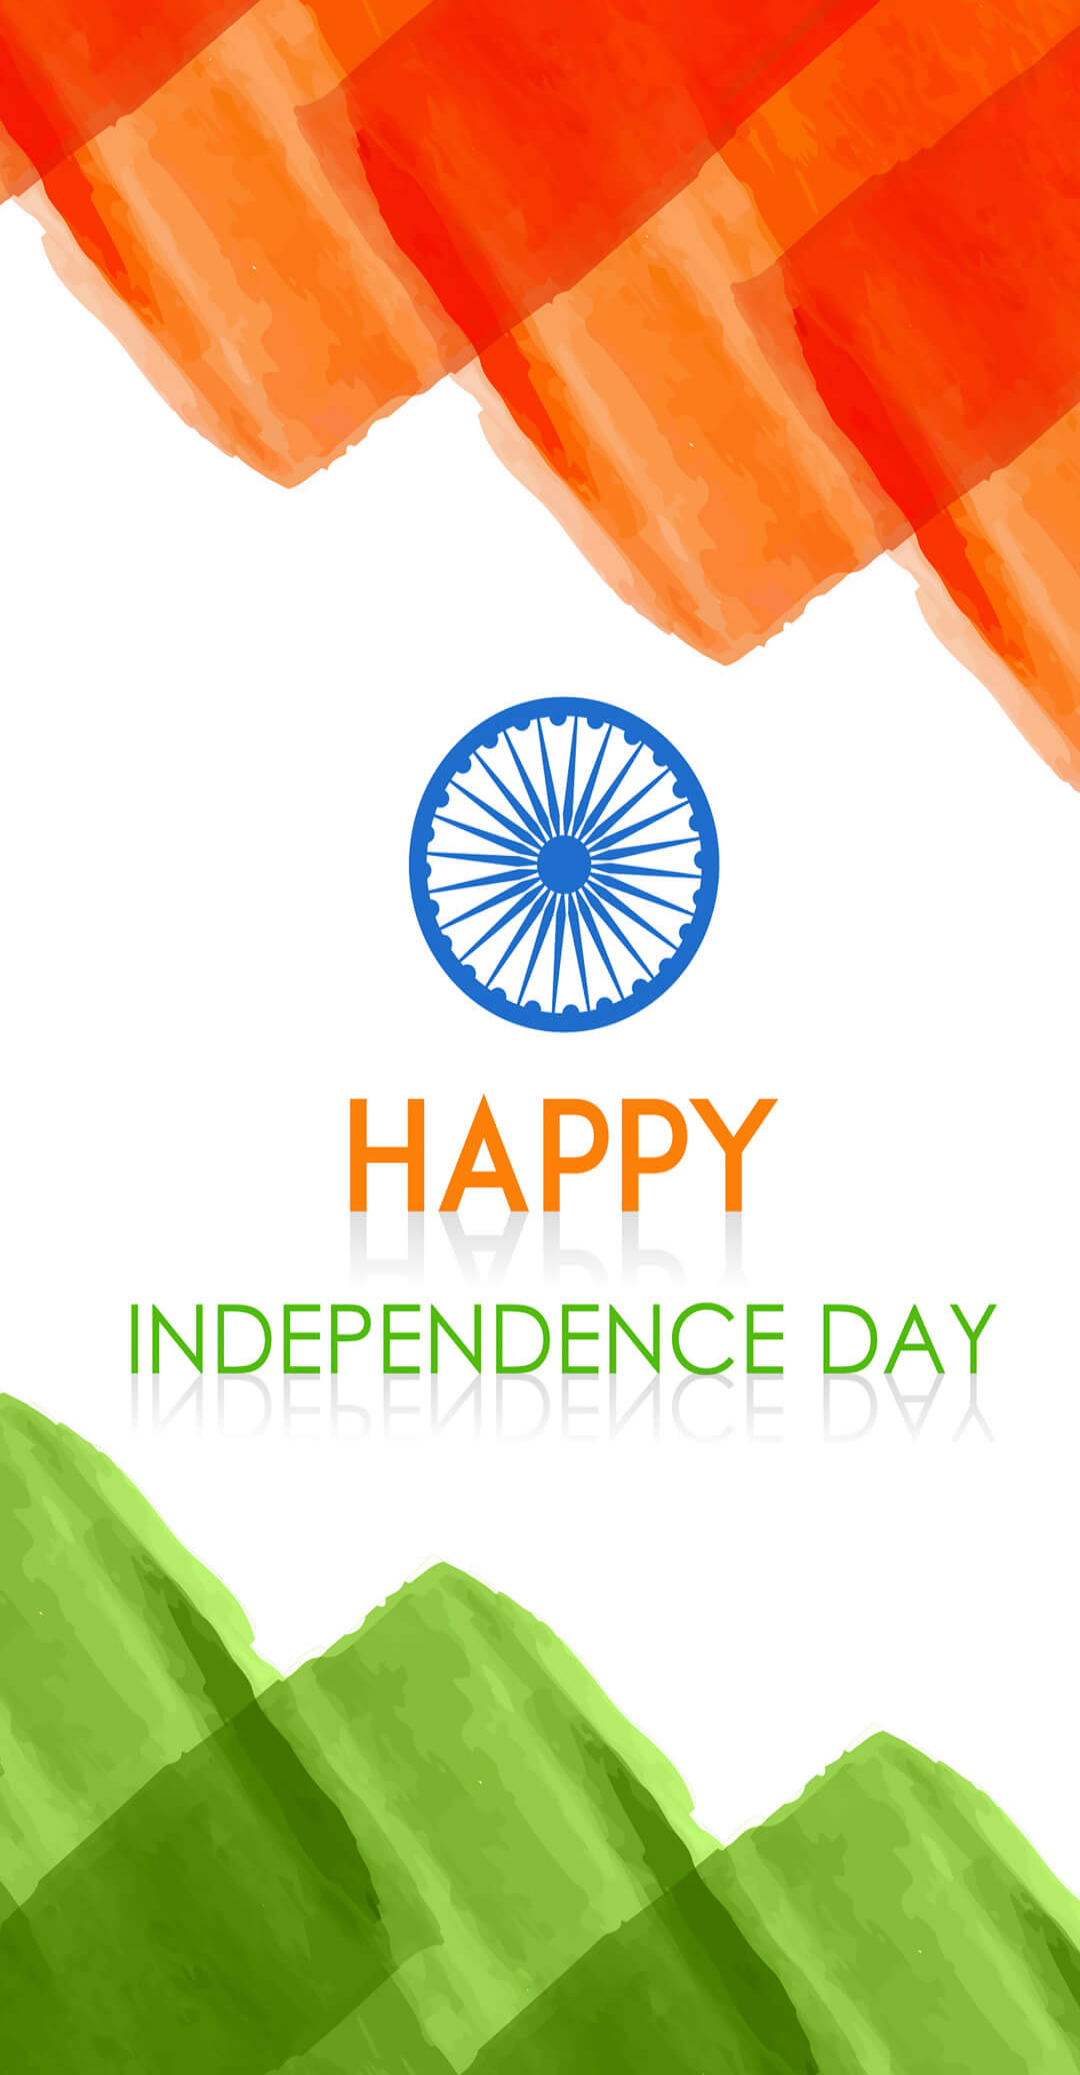 15 August Images With Quotes 15 August Images Wallpaper 15 August Images With Shayari 15 Au 15 August Independence Day August Images Independence Day Wallpaper